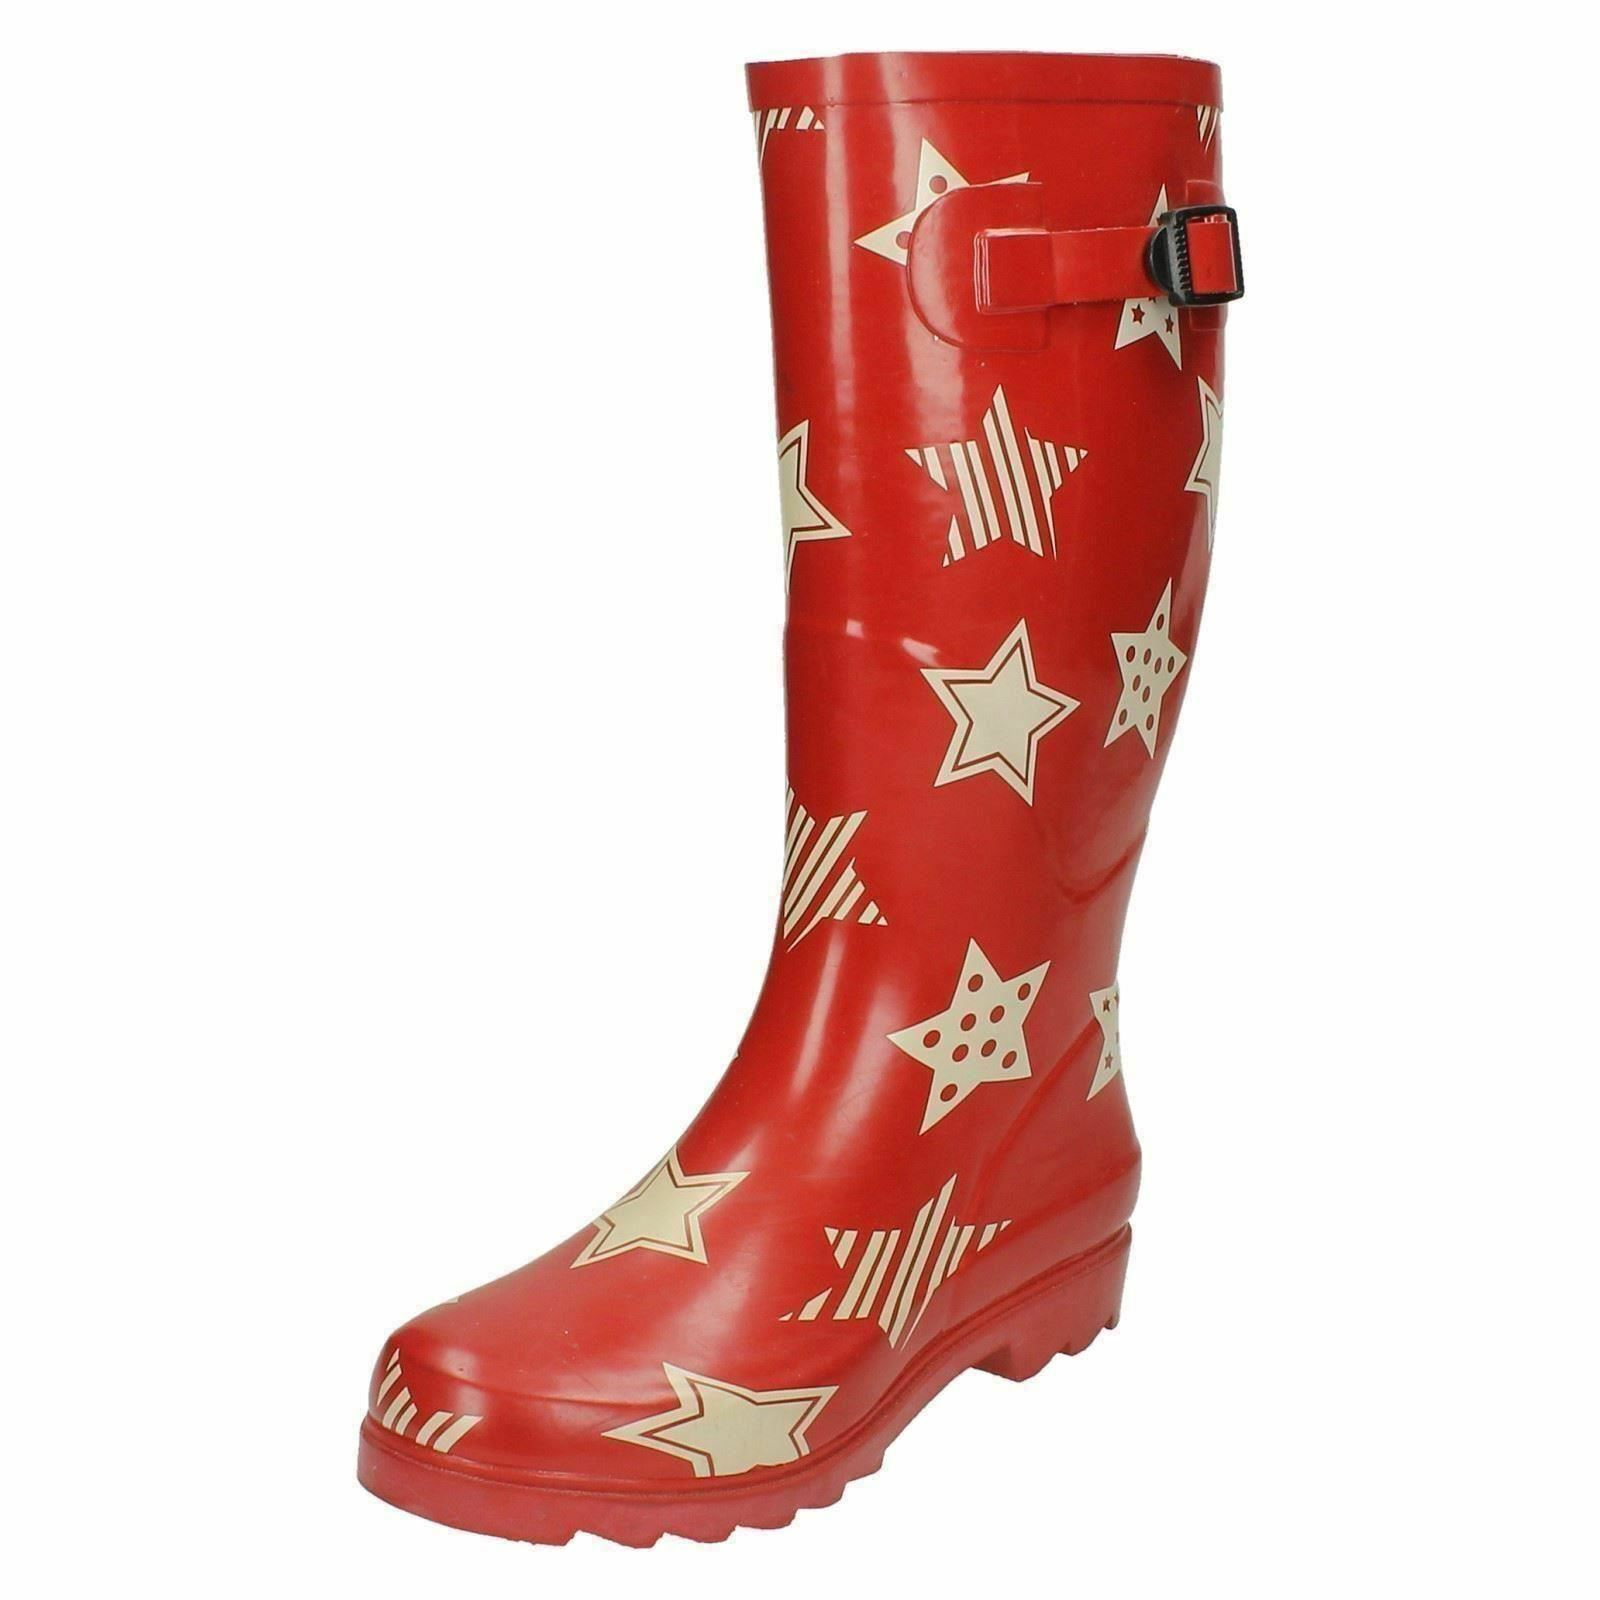 Ladies X1044 Red with white stars rubber wellington boots by SPOT ON